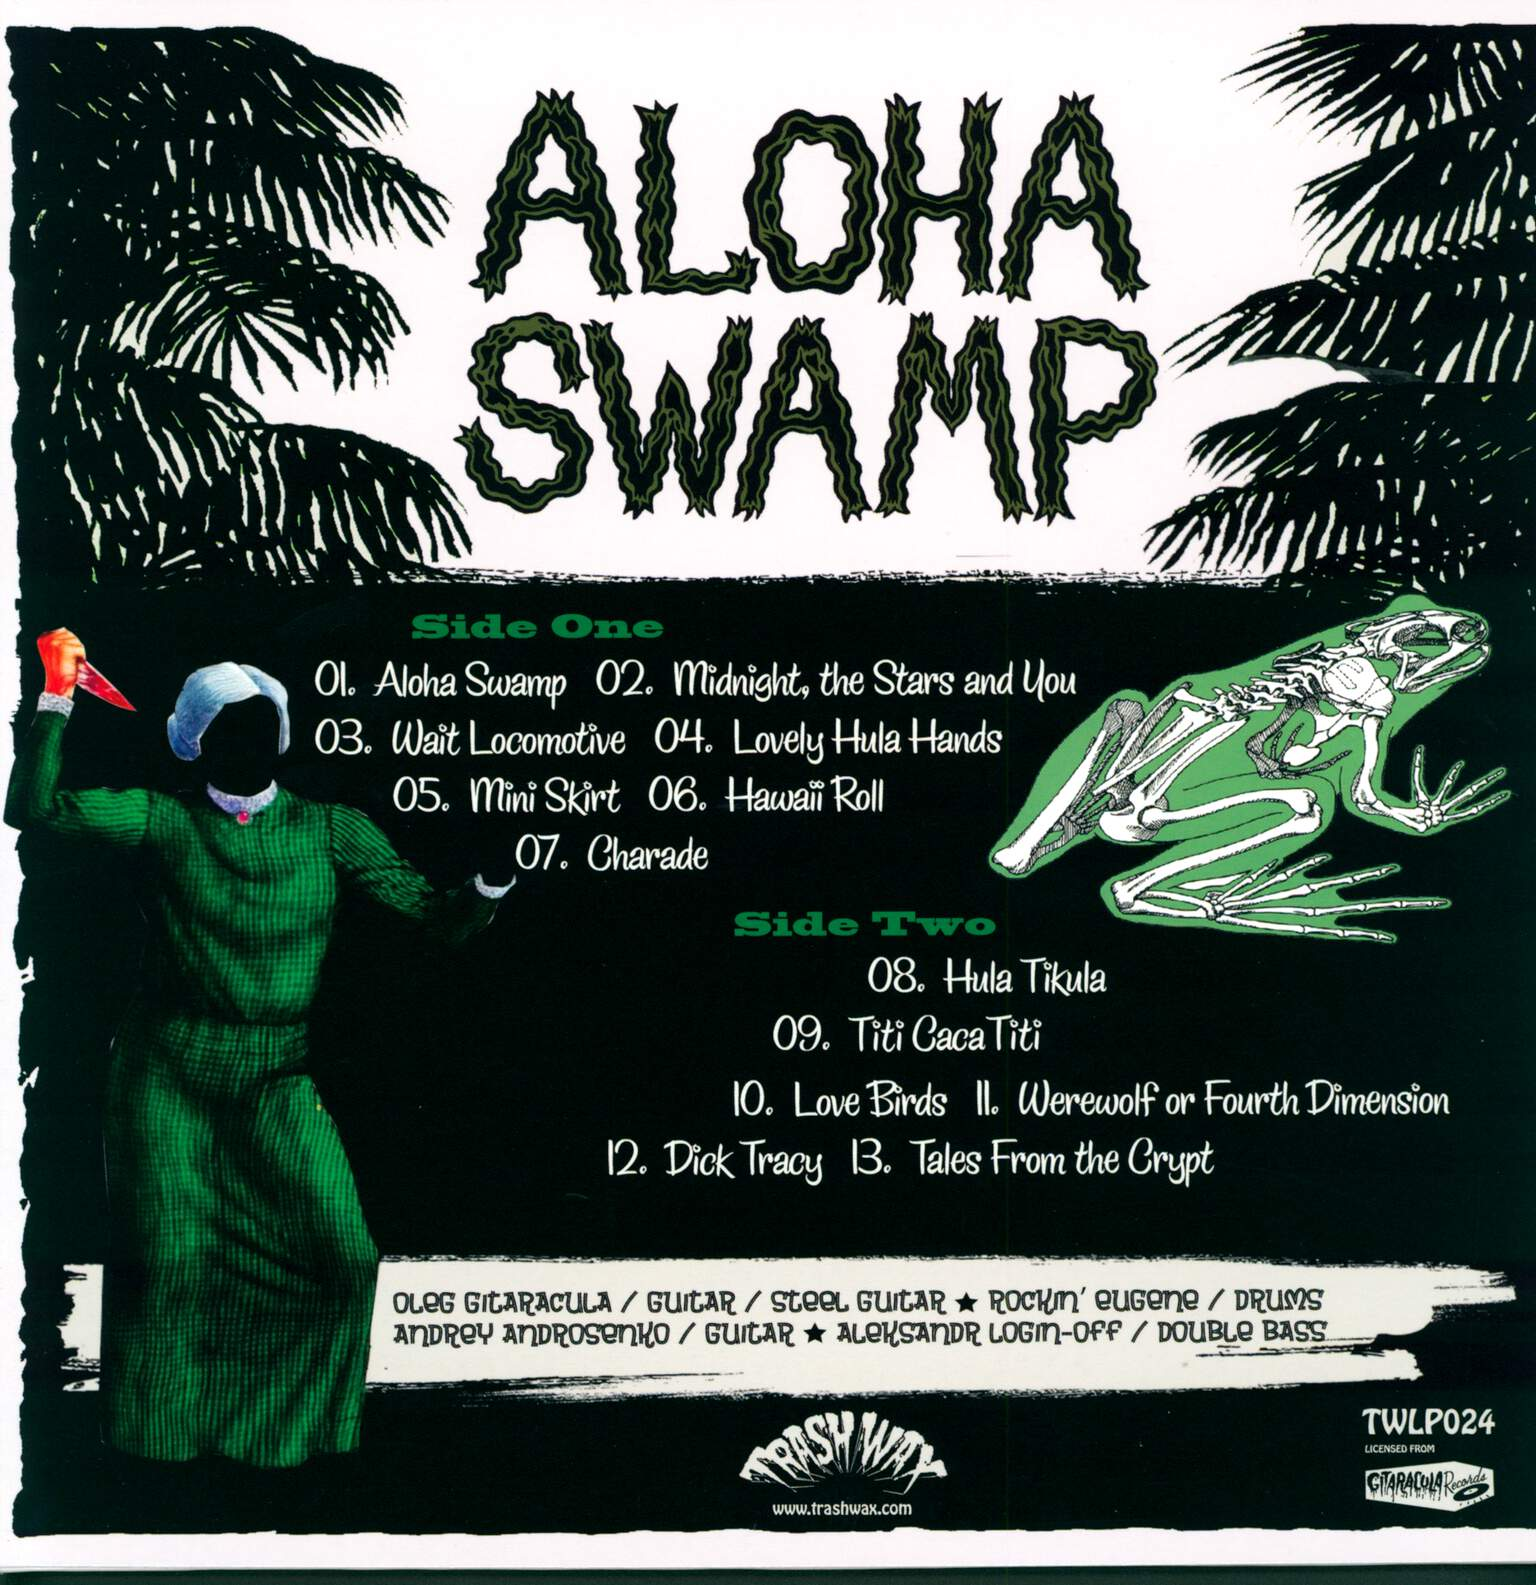 Aloha Swamp: Swamp Vacation (All Inclusive), 1×LP (Vinyl)